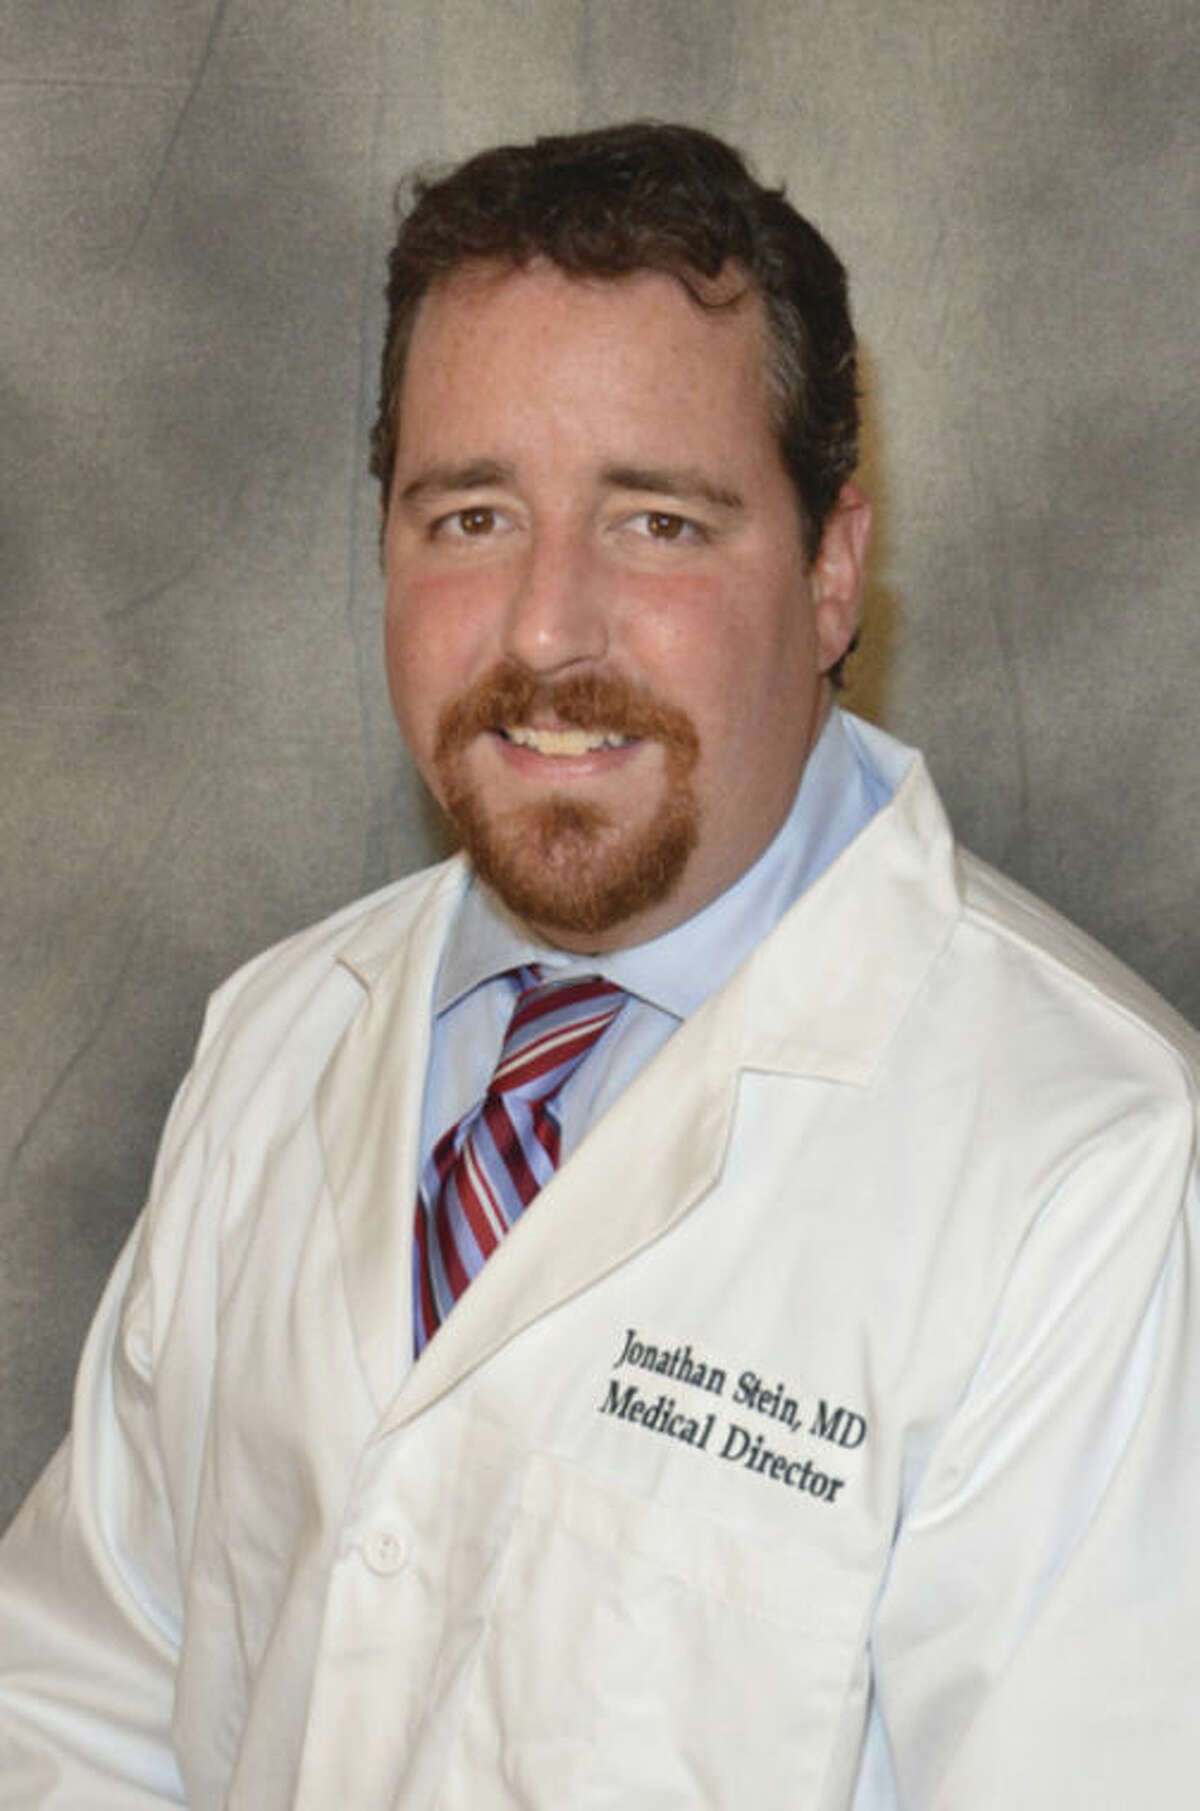 Contributed photo Dr. Jonathan Stein of OCC, with offices in Fairfield, Stamford, and Meriden, has performed more than 100 of the procedures, and starting Wednesday, Jan. 23, OCC's laser surgeries will be performed in Norwalk.